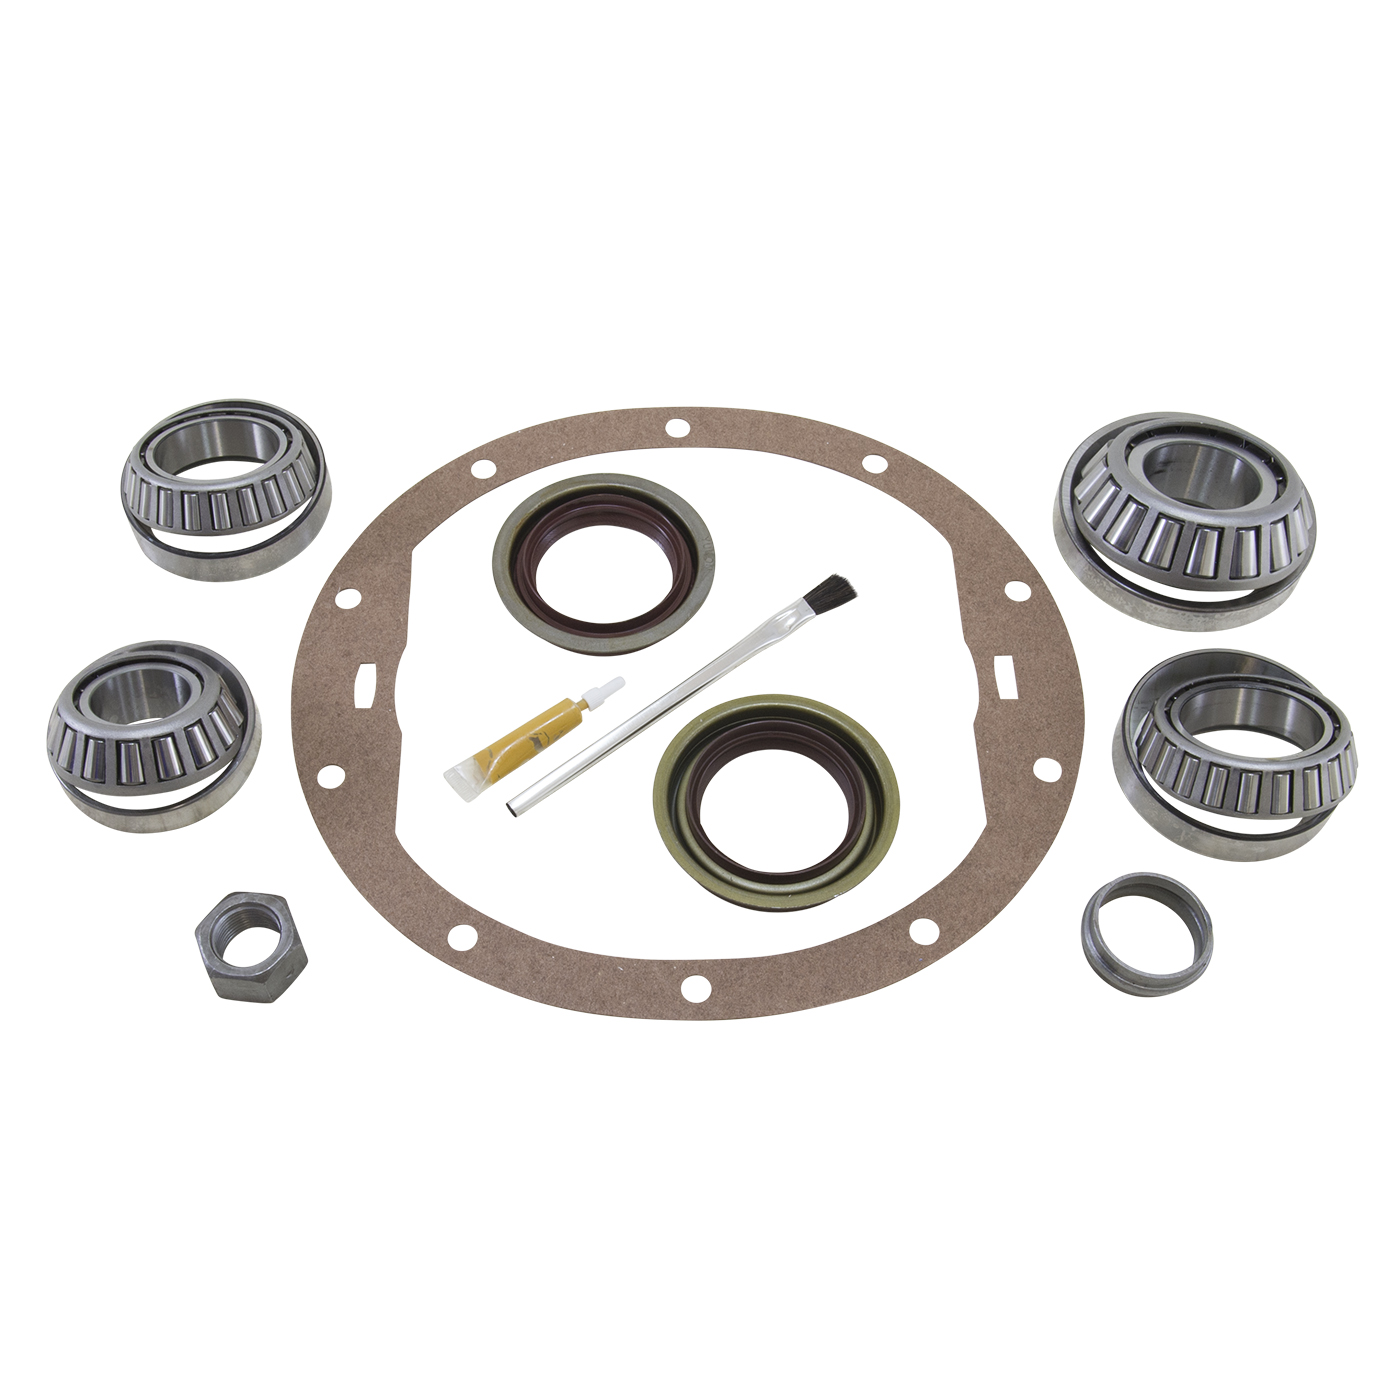 ZBKF9.75-B USA Standard Gear Bearing Kit for Ford 9.75 Differential